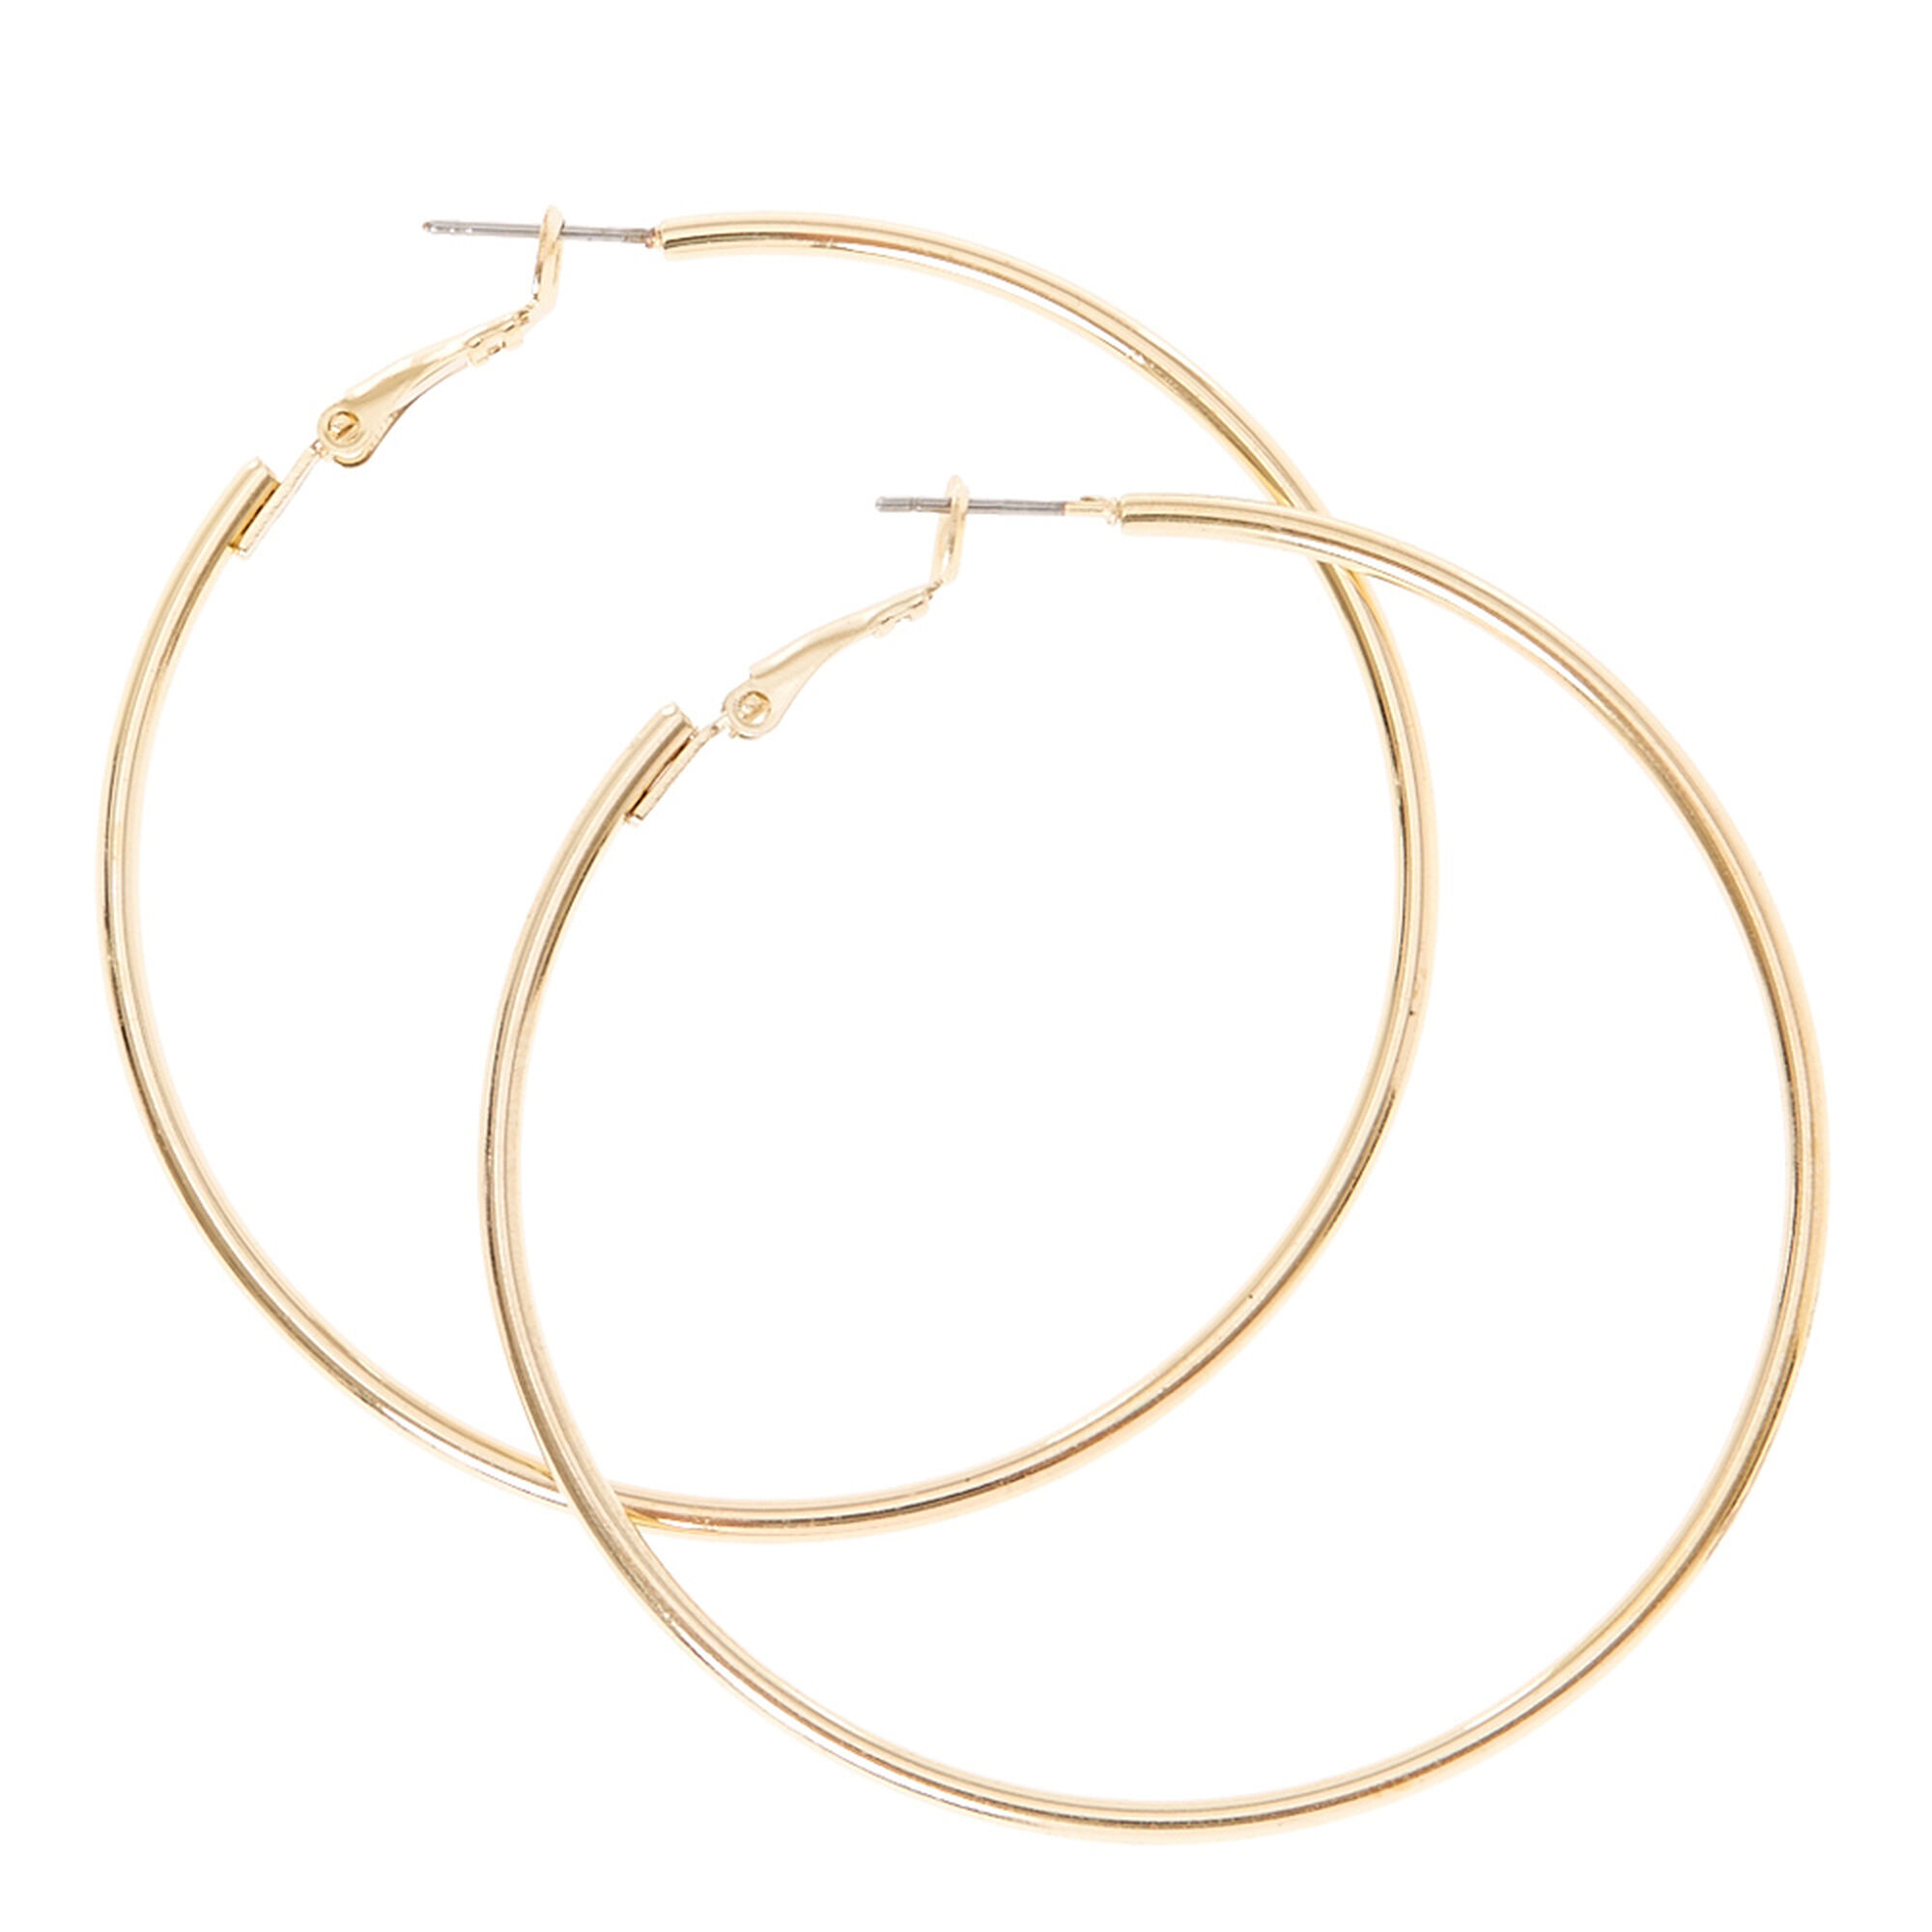 plated jewellery gold jewelry stainless dp hoop amazon com earrings steel yellow diameter stunning